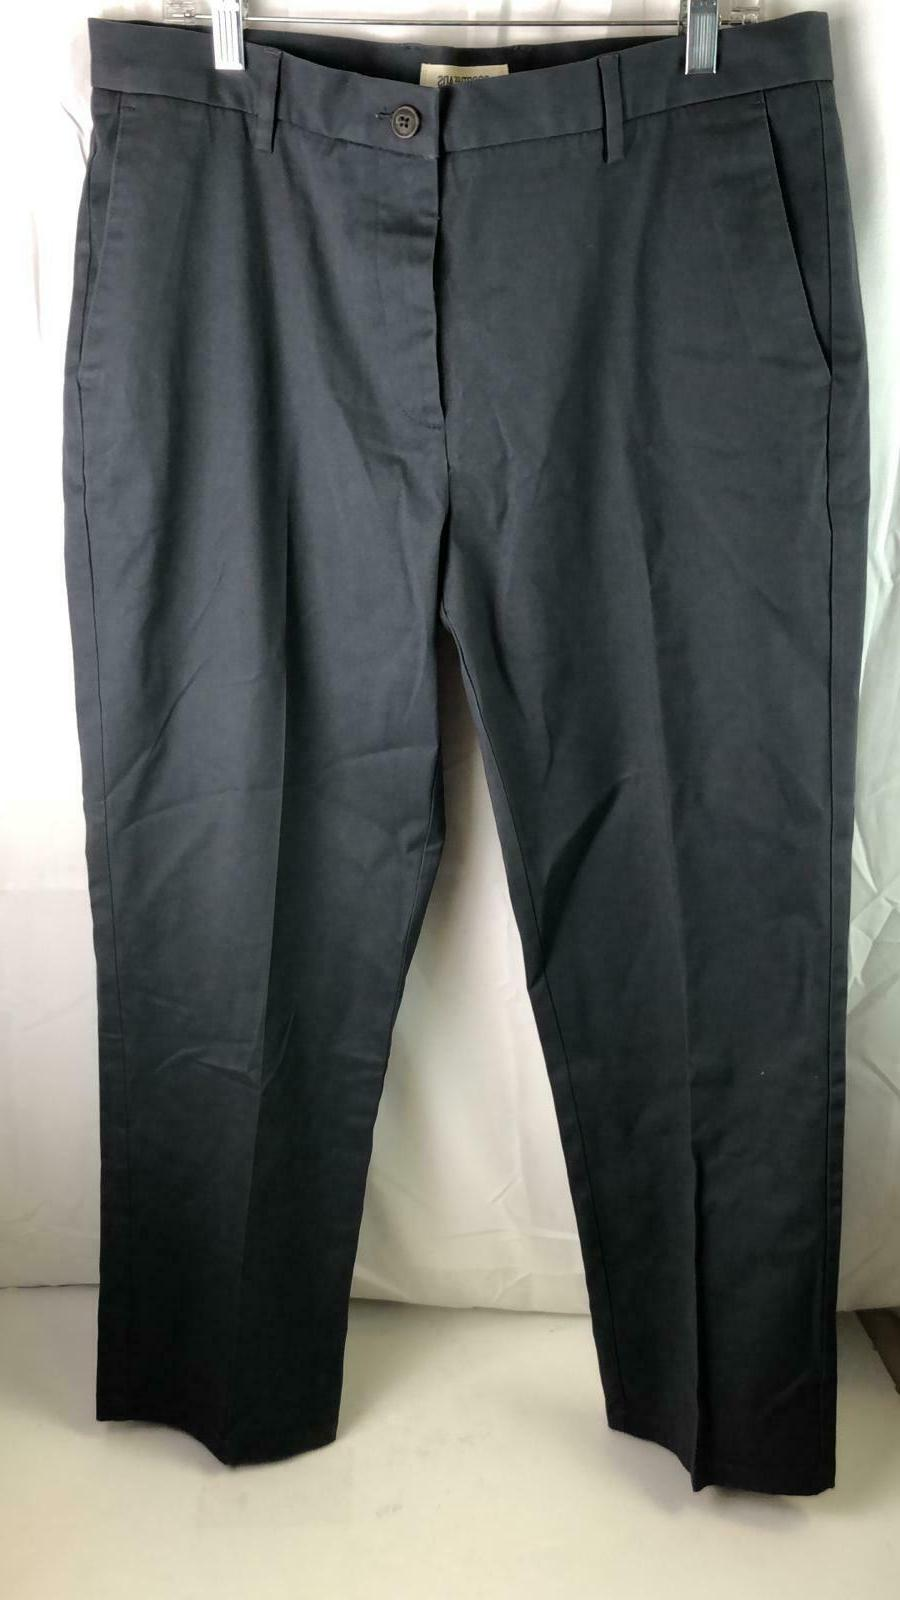 mens straight pants size 35x28